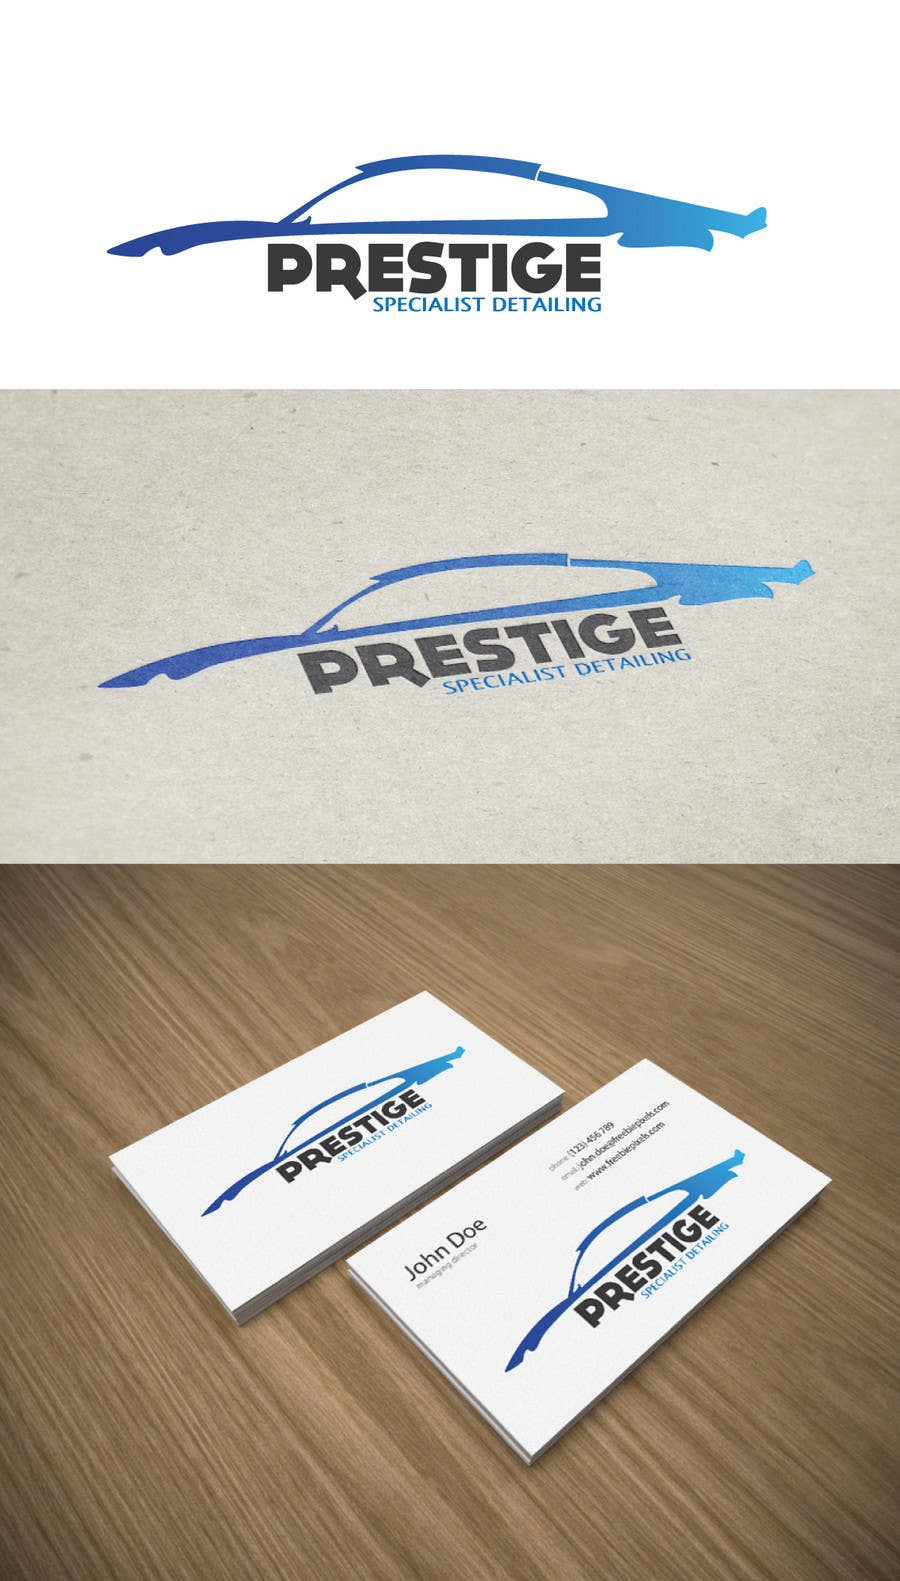 Contest Entry #7 for Logo Design for PRESTIGE SPECIALIST DETAILING